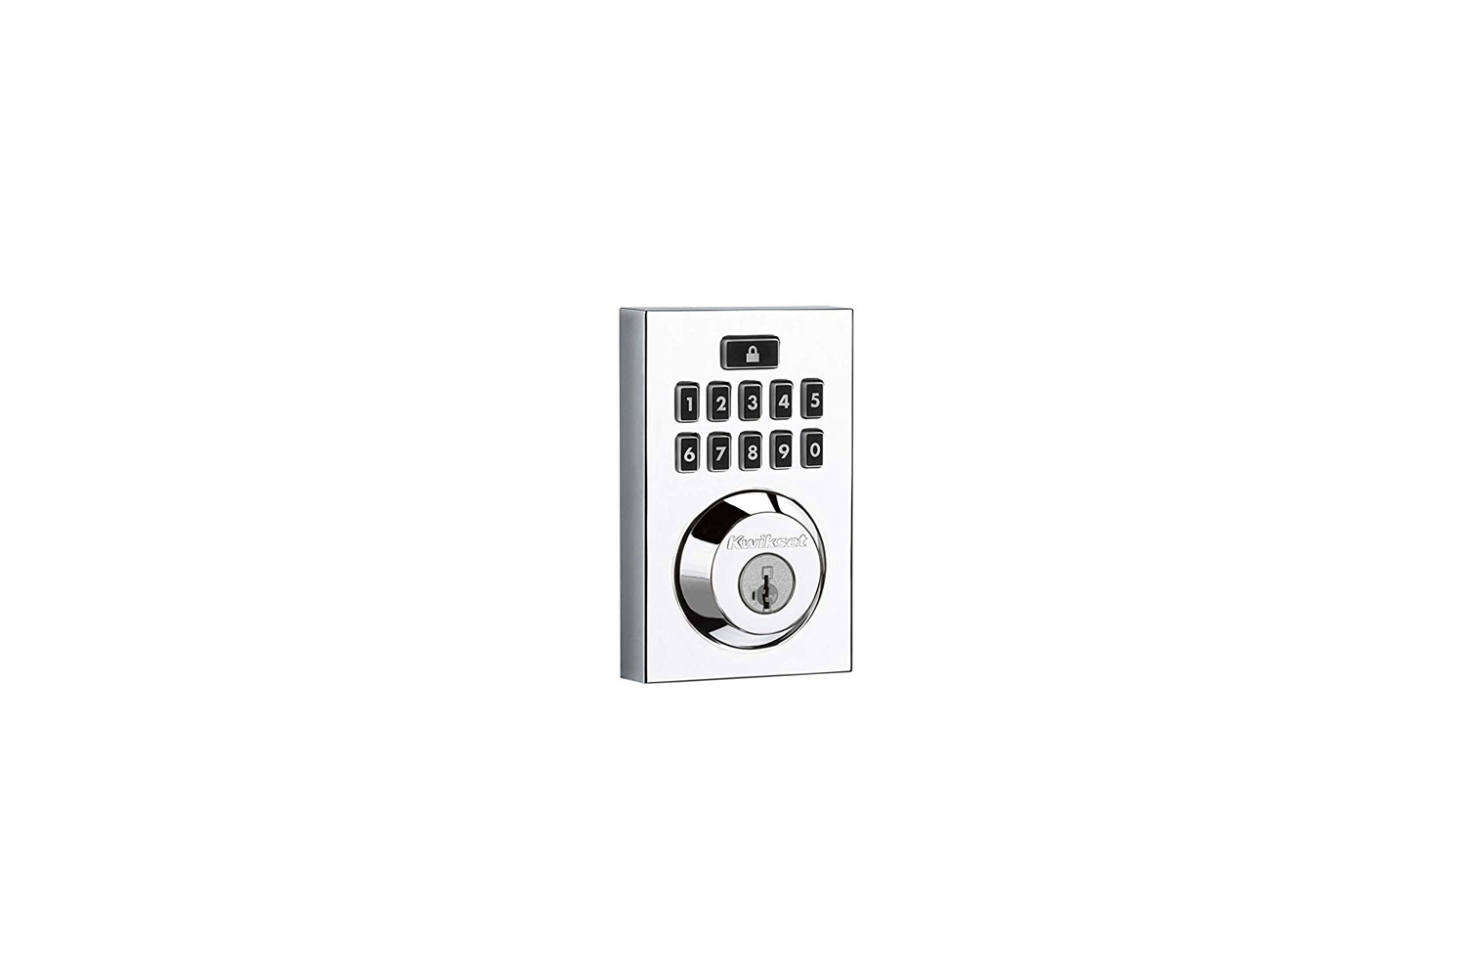 The Kwiset Smartcode 9 Contemporary Electronic Deadbolt Featuring Smartkey comes in Polished Chrome, Satin Nickel, or Venetian Bronze and can be programmed with up to  different user codes; $src=